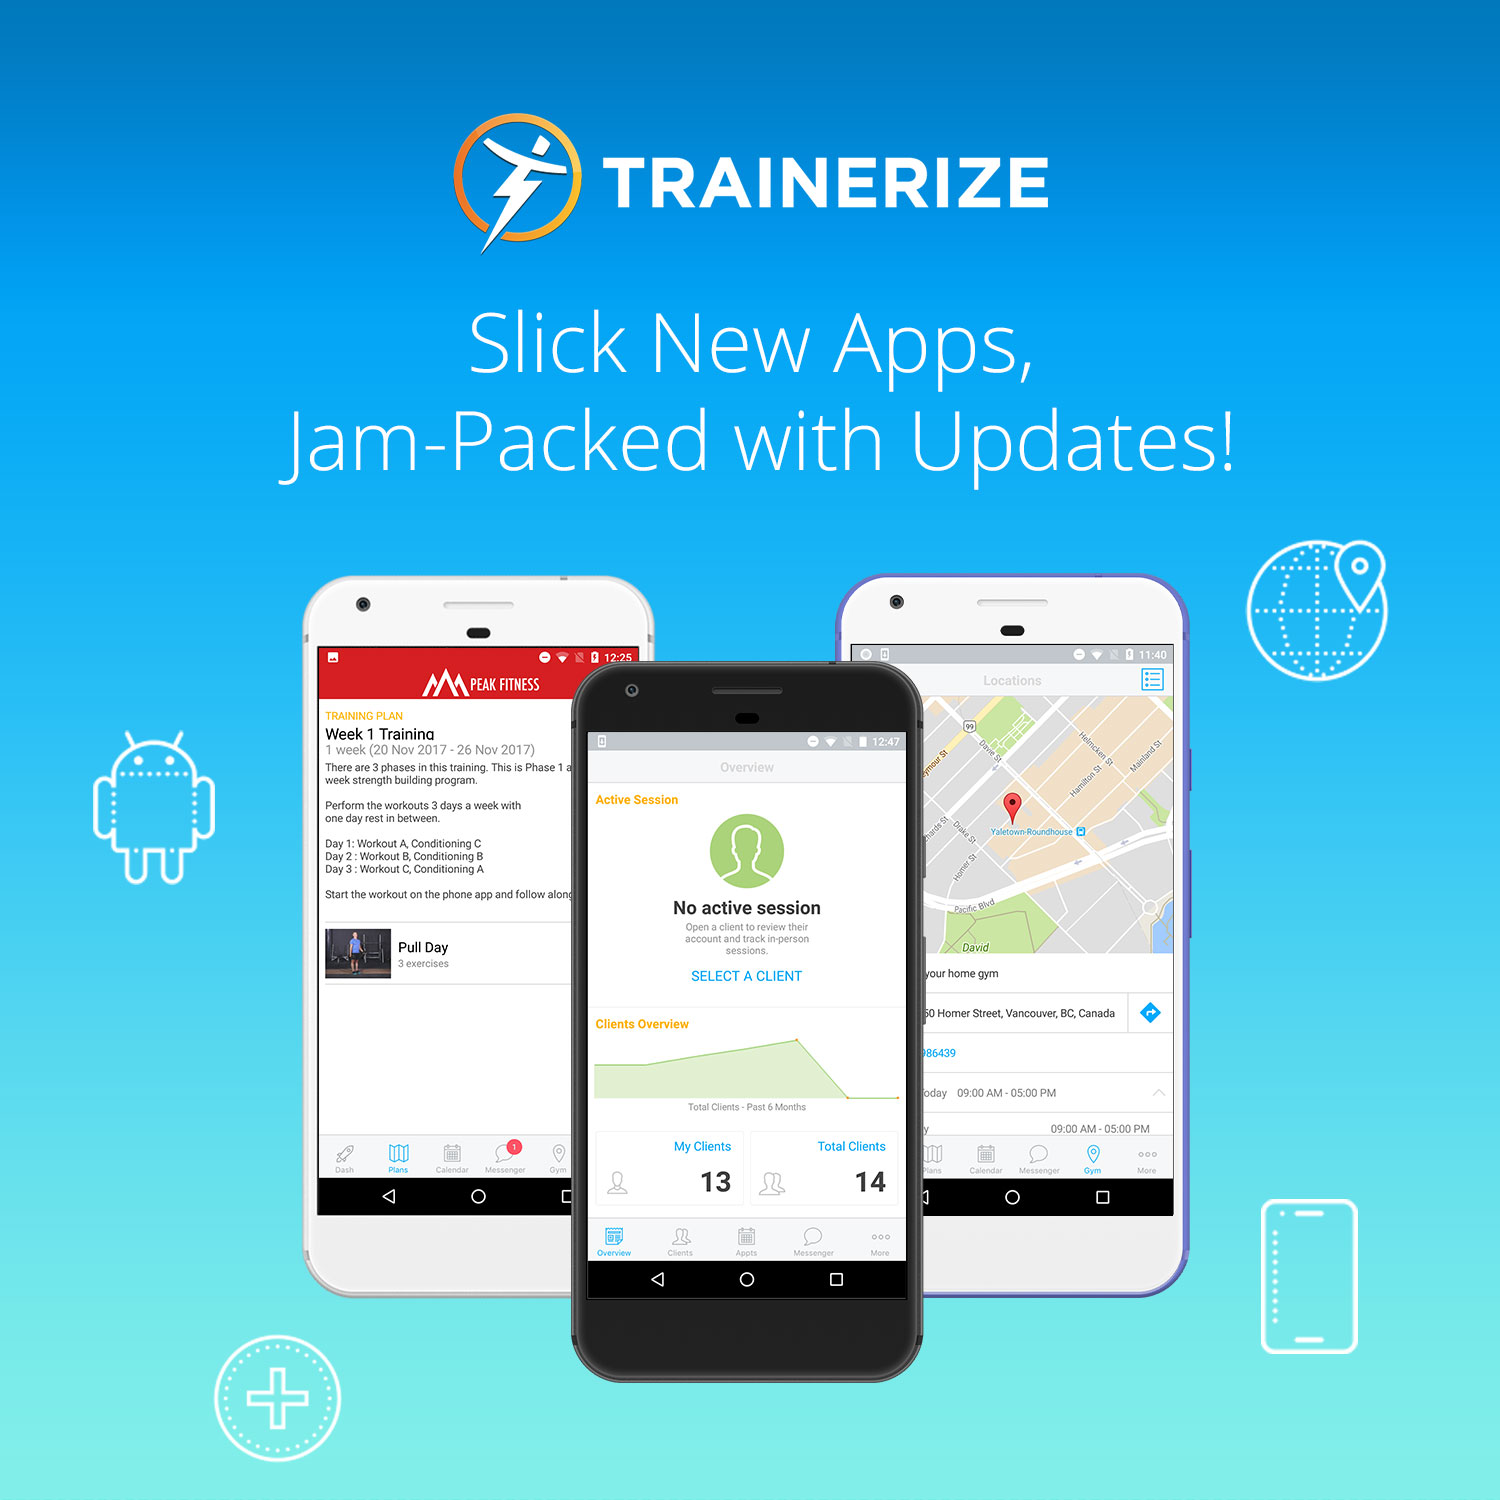 Trainerize Update | The New Trainerize Android App is Here